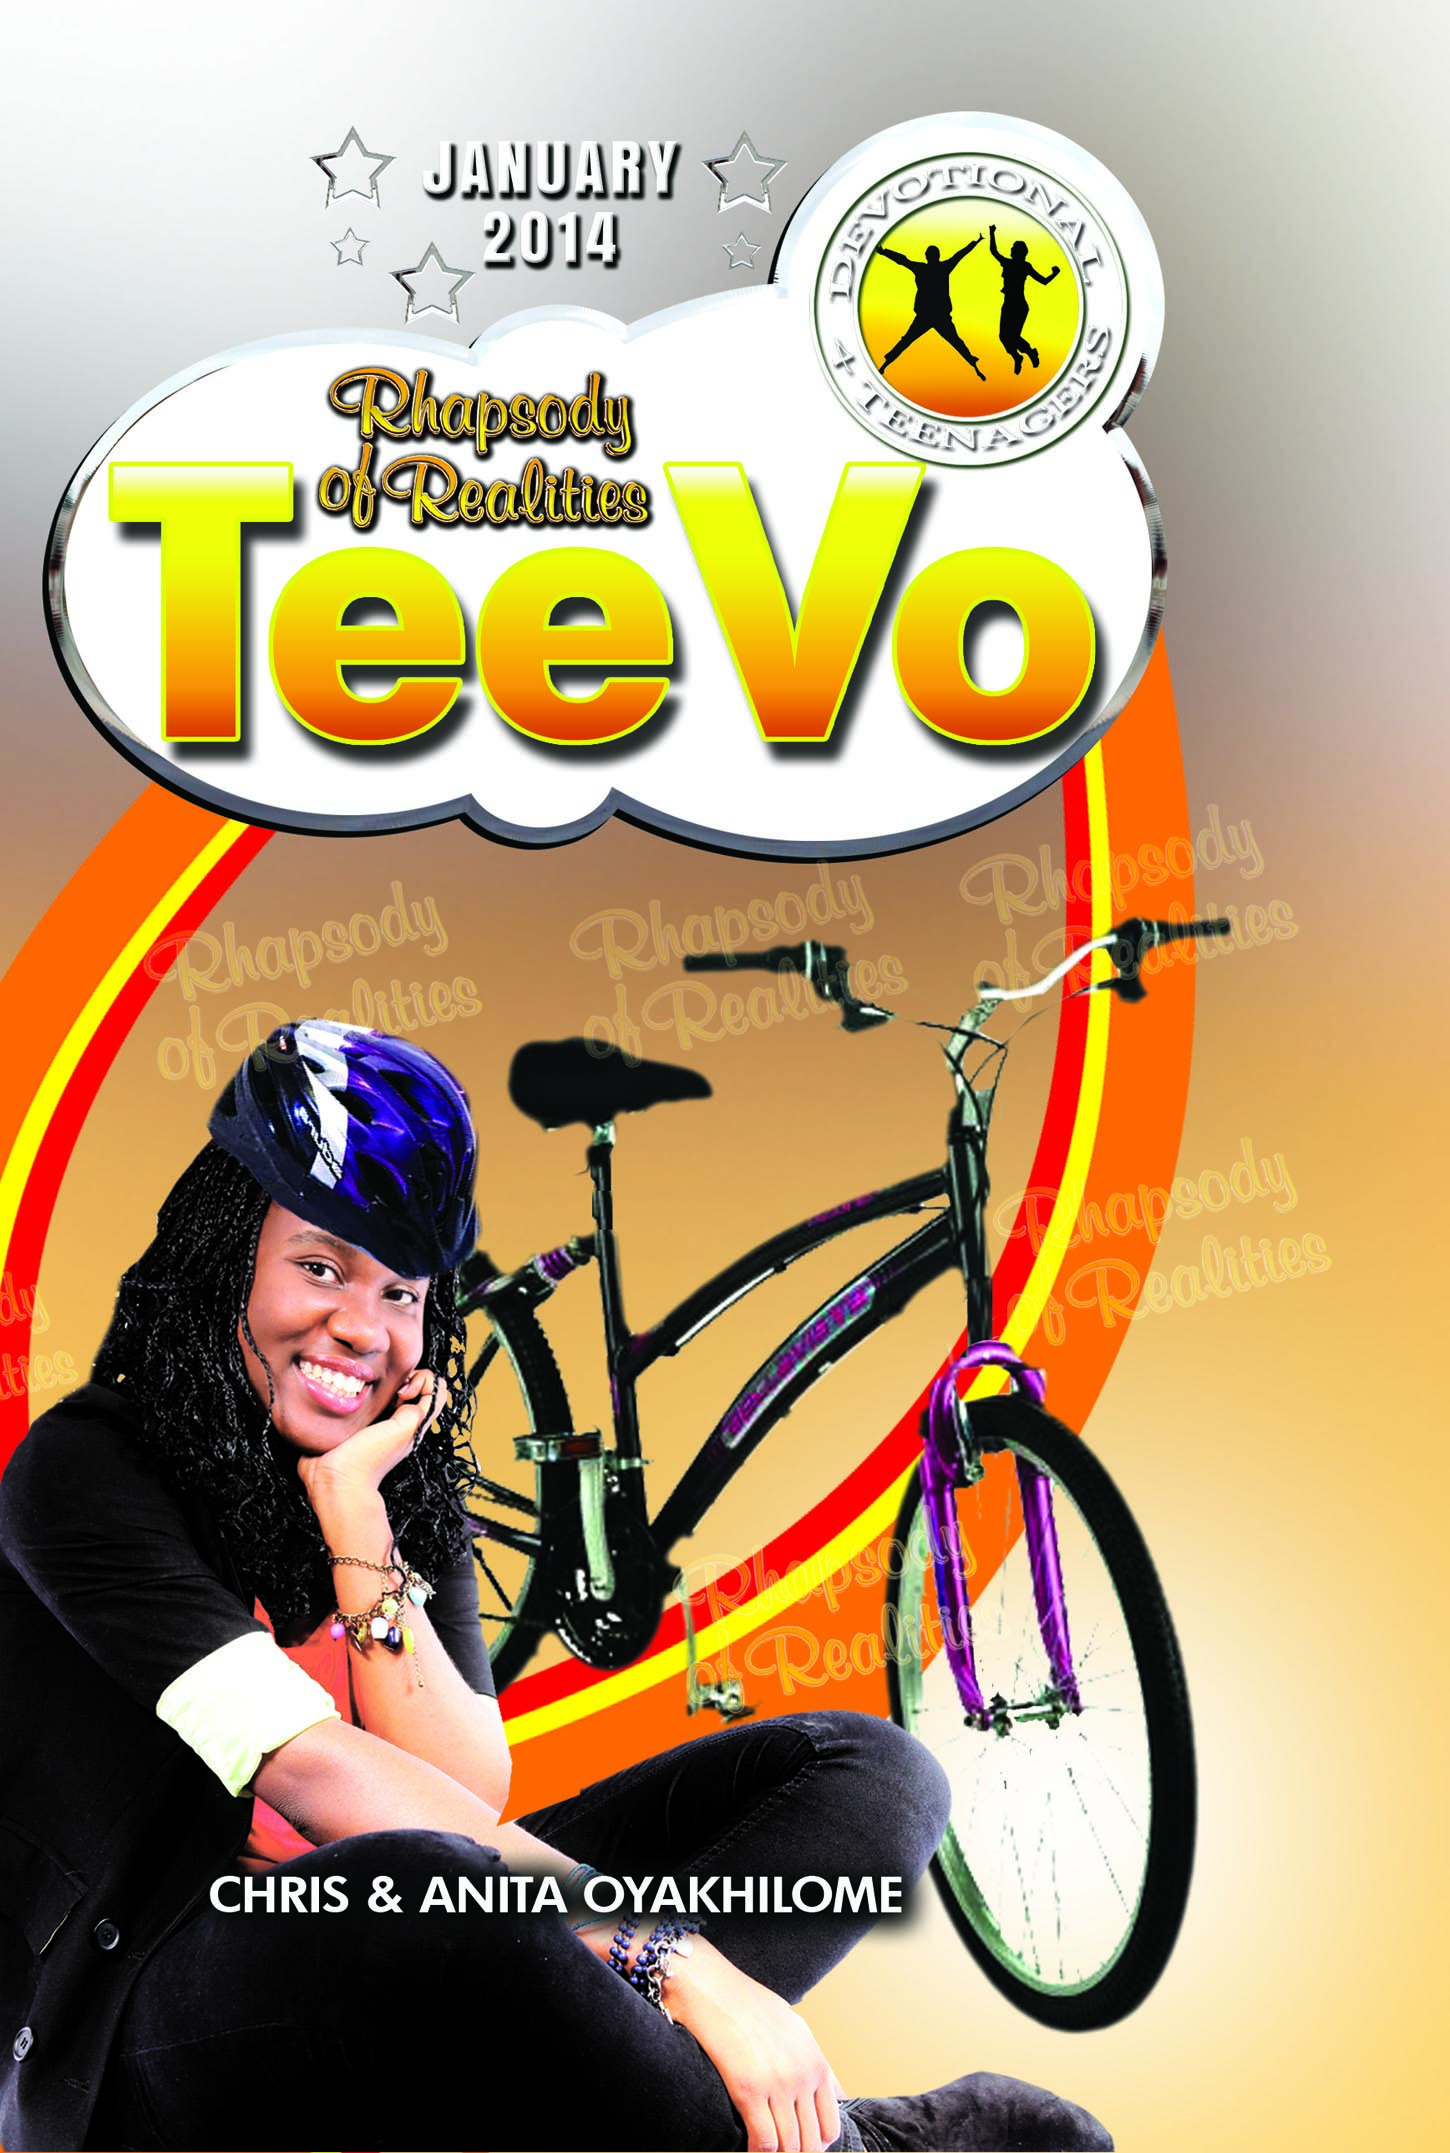 Pastor Chris and Anita Oyakhilome - Rhapsody of Realities TeeVo – January 2014 Edition